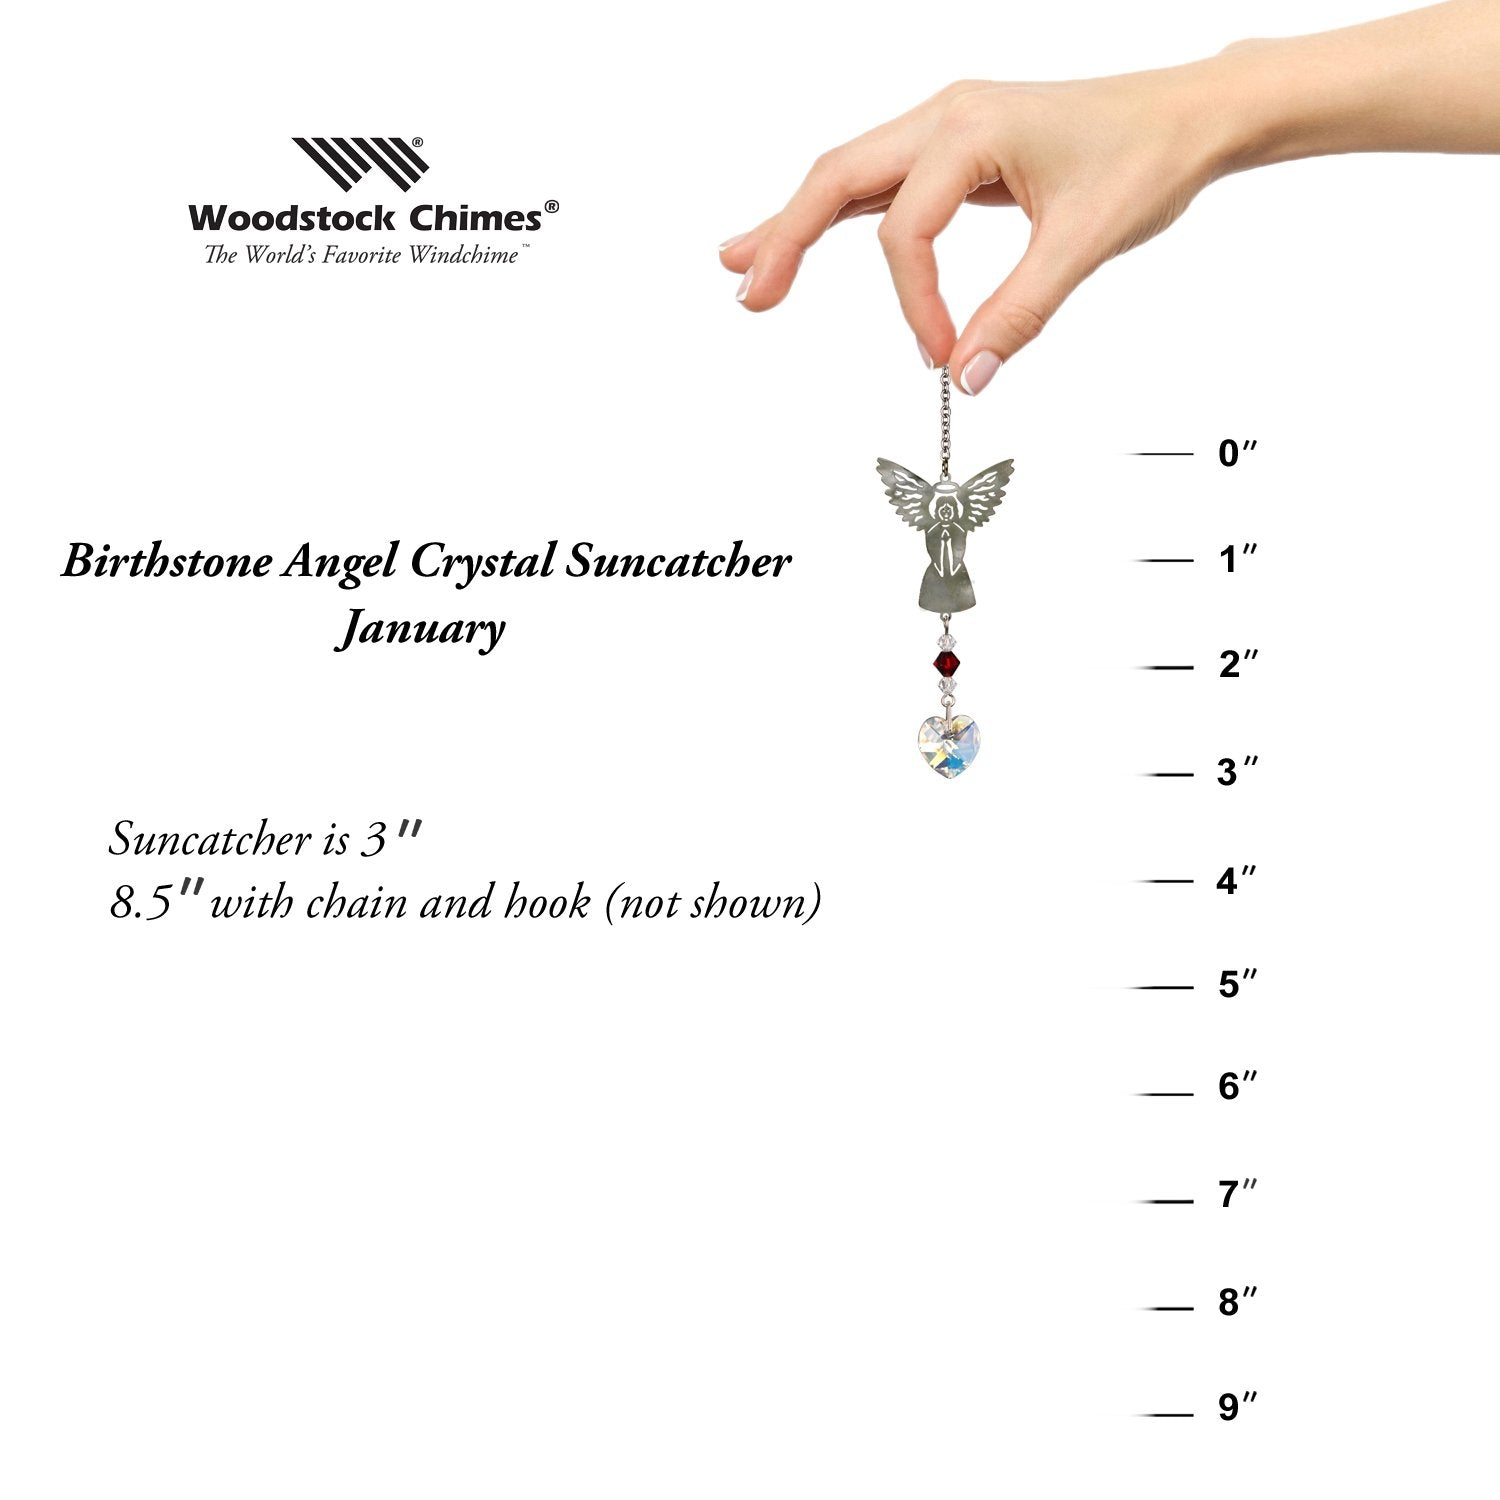 Birthstone Angel Crystal Suncatcher - January proportion image